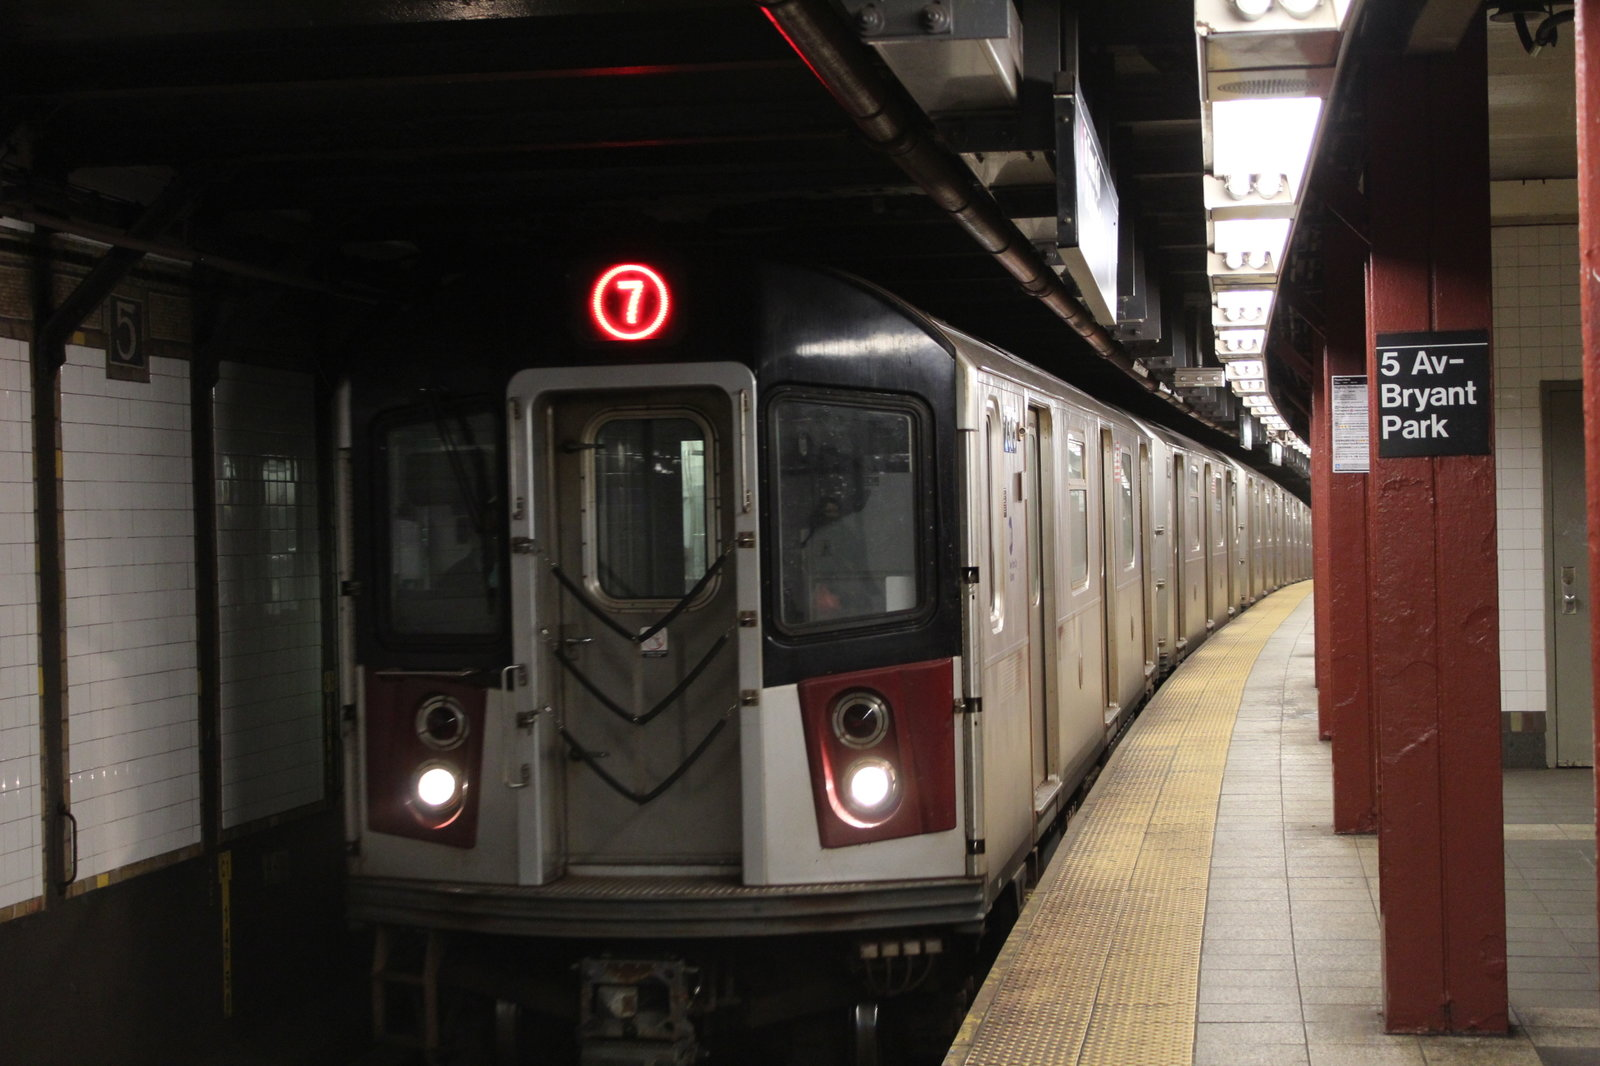 Hudson Yards-bound (7) train arriving at 5th Avenue-Bryant Park